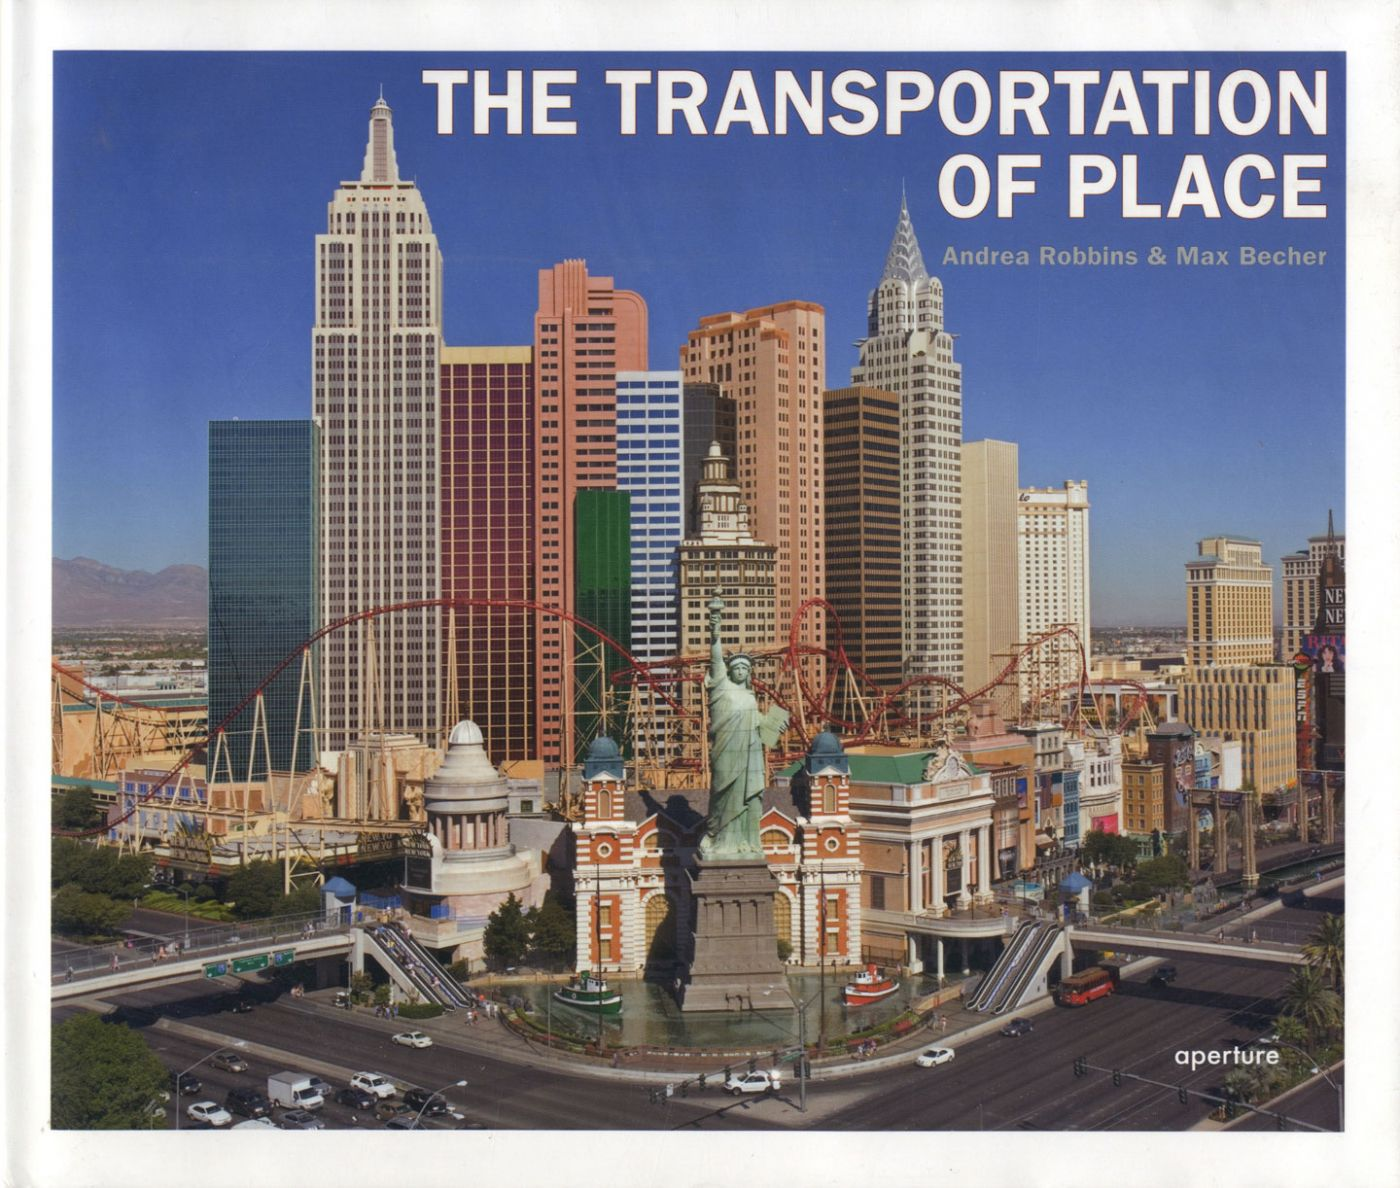 Andrea Robbins and Max Becher: The Transportation of Place [SIGNED]